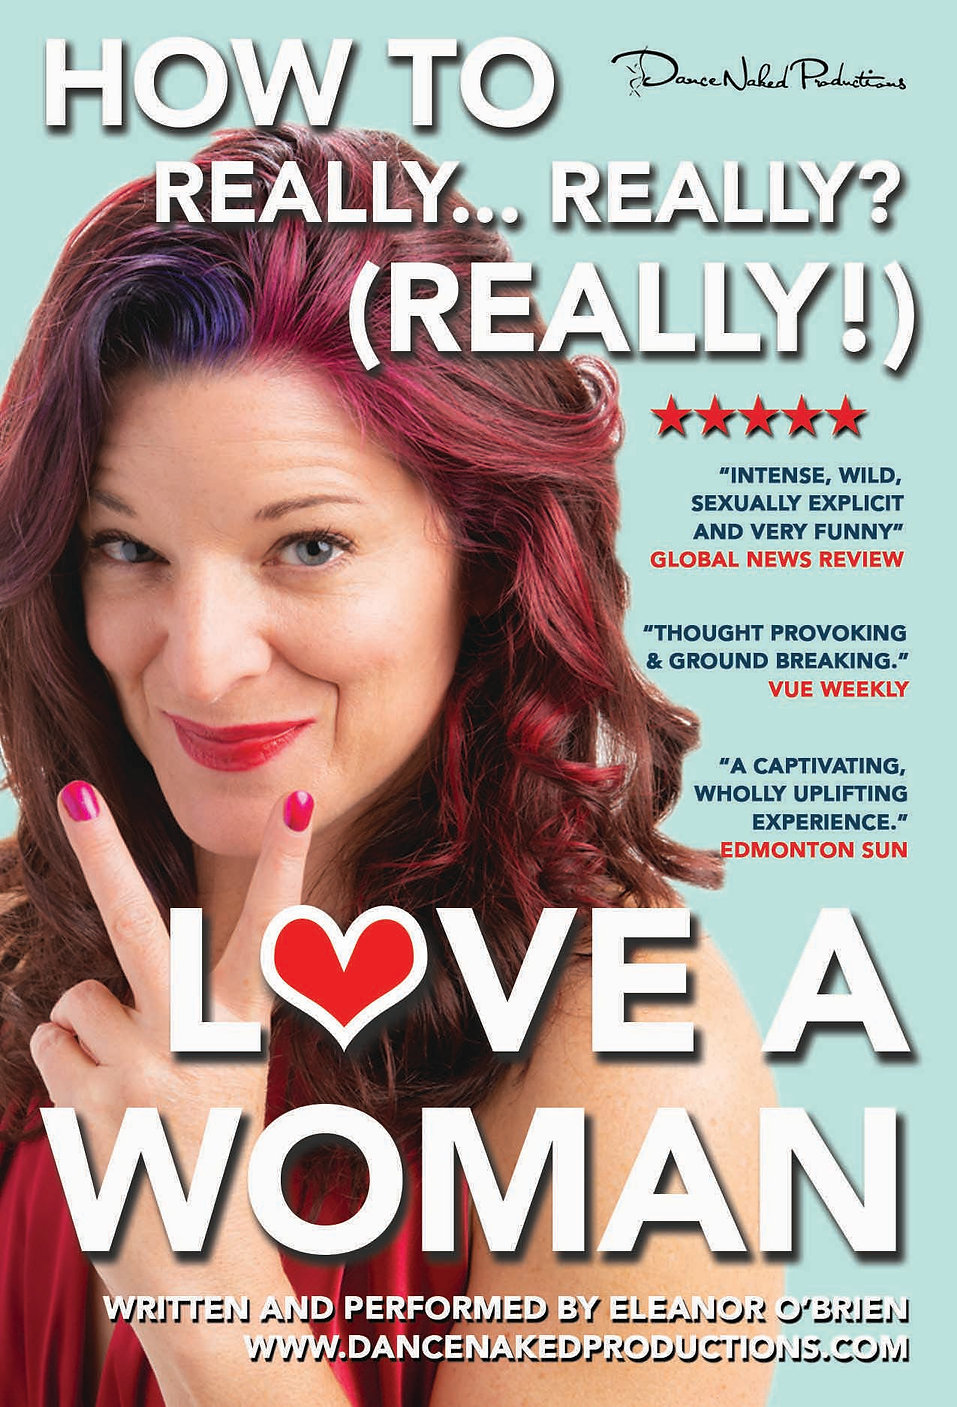 how to Really, Really? Really! LoveA Woman Poster